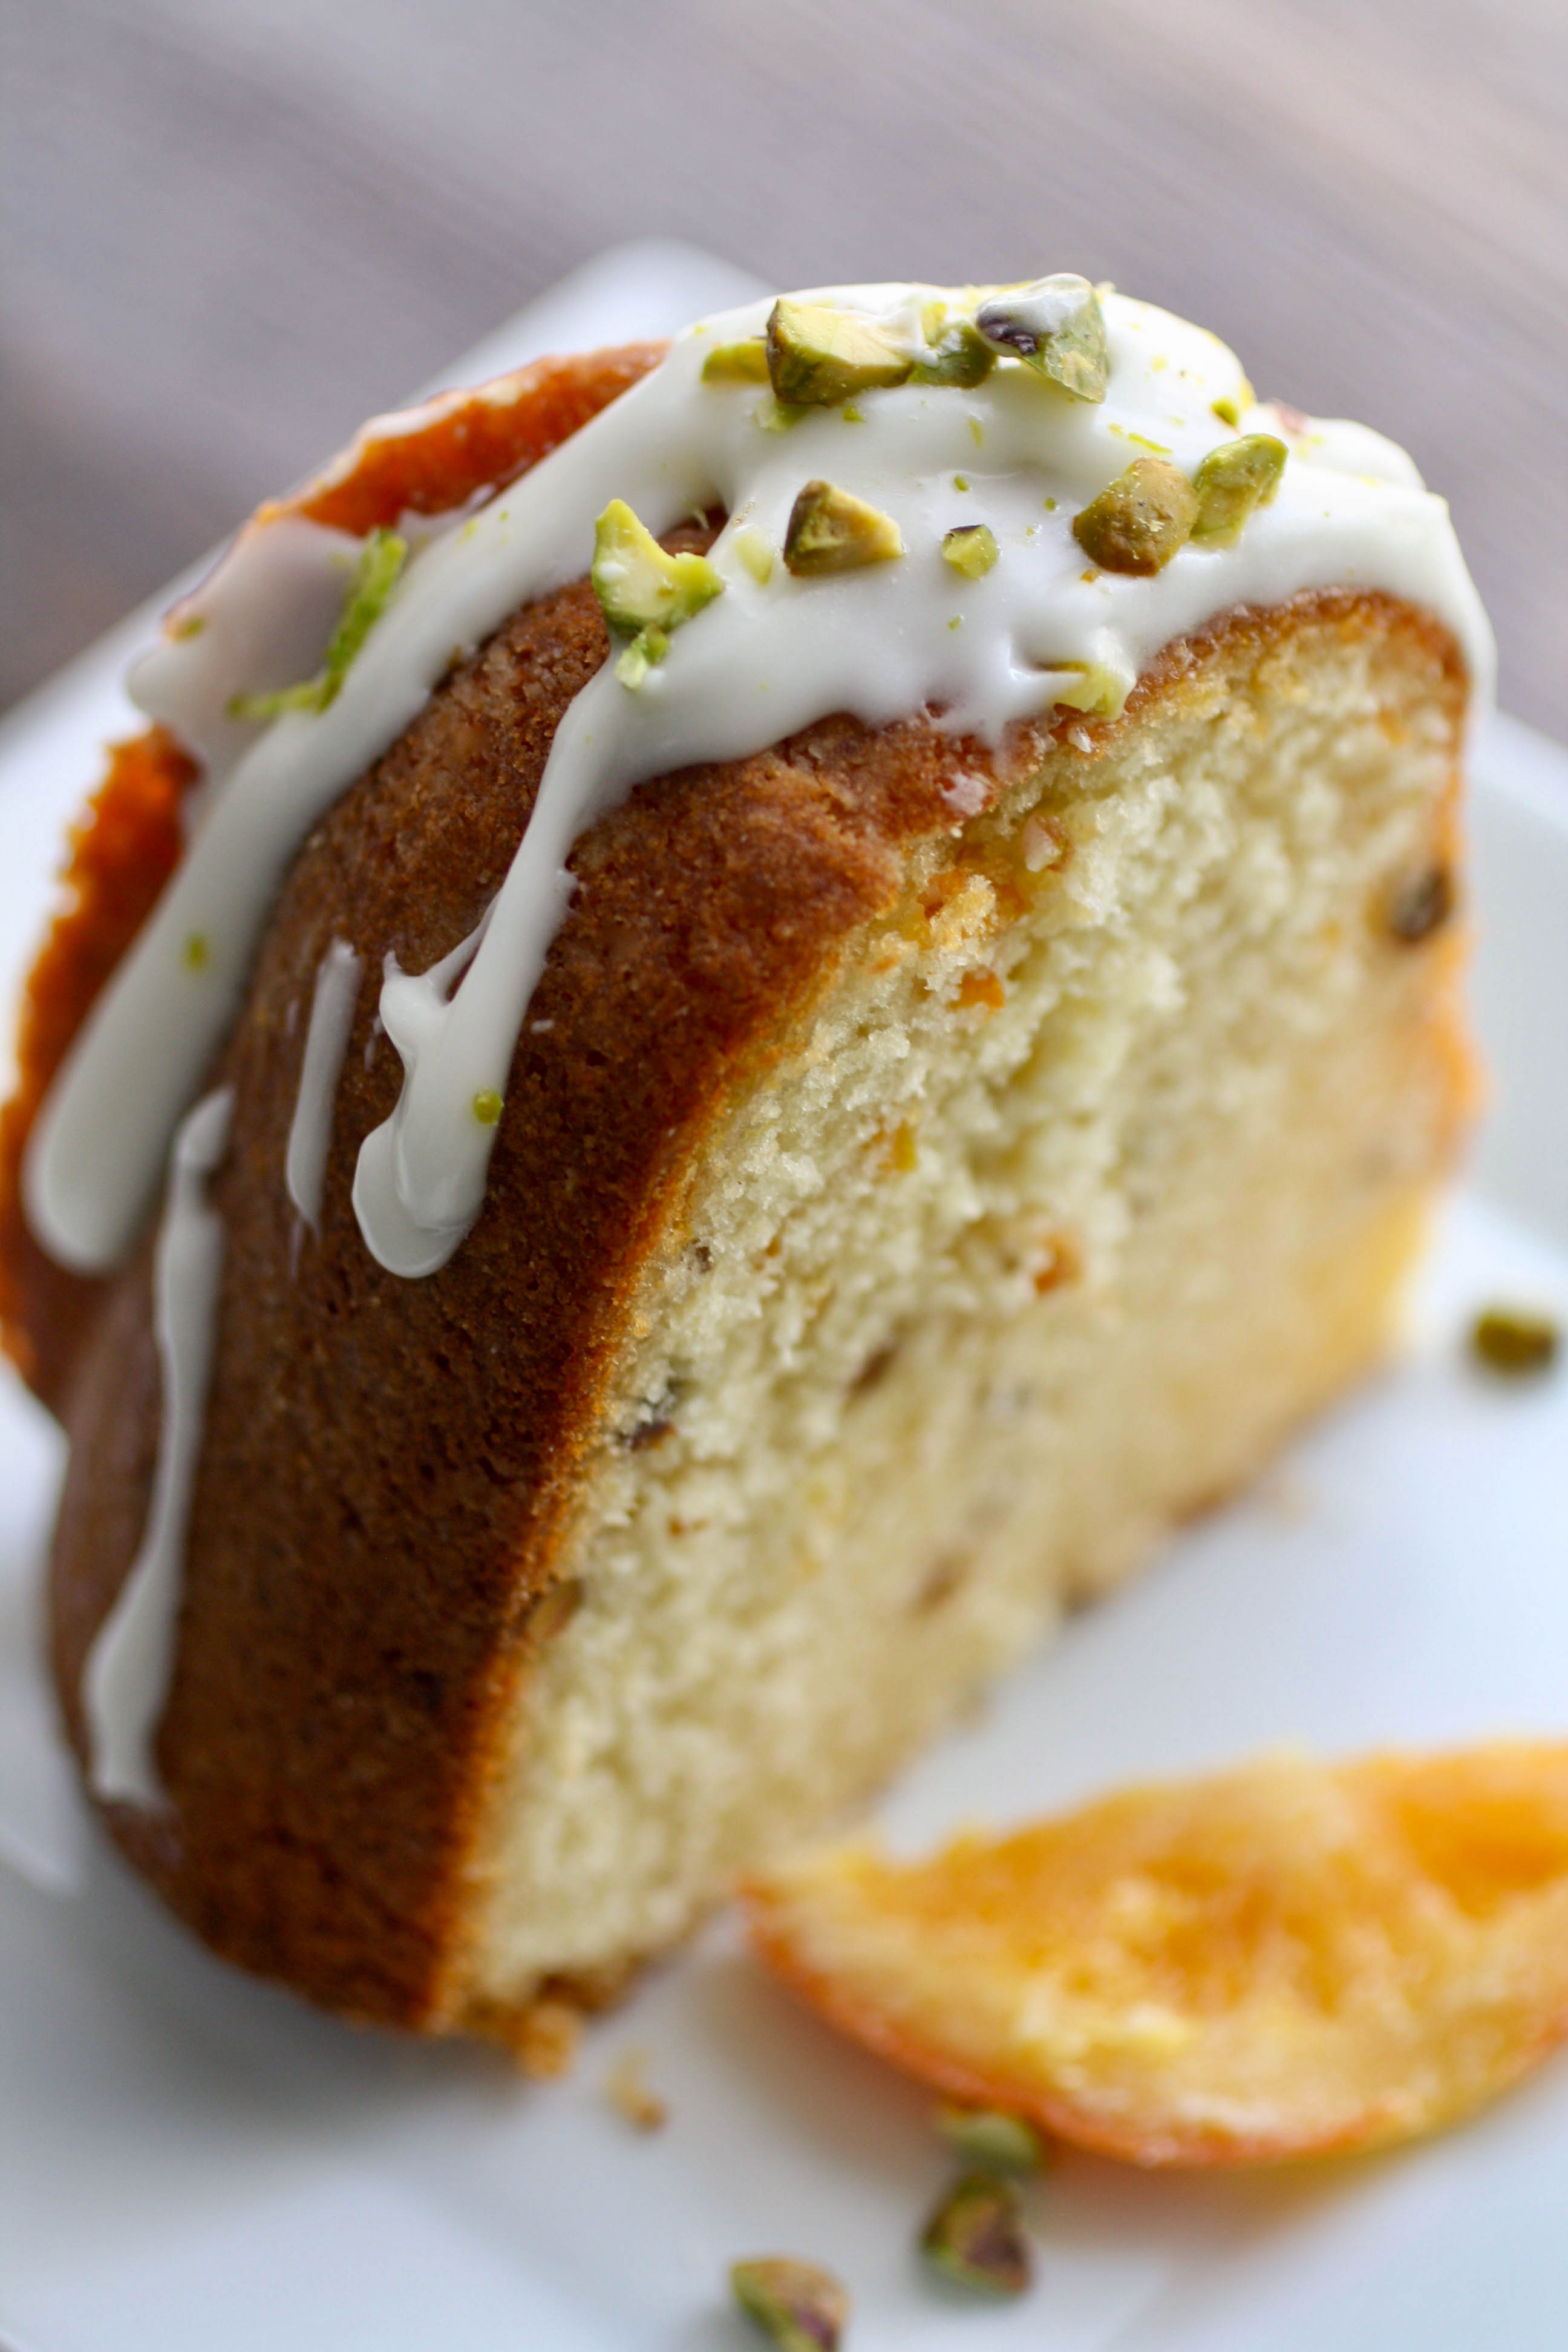 Orange Marmalade-Pistachio Bundt Cake is a lovely dessert. Make it this spring!